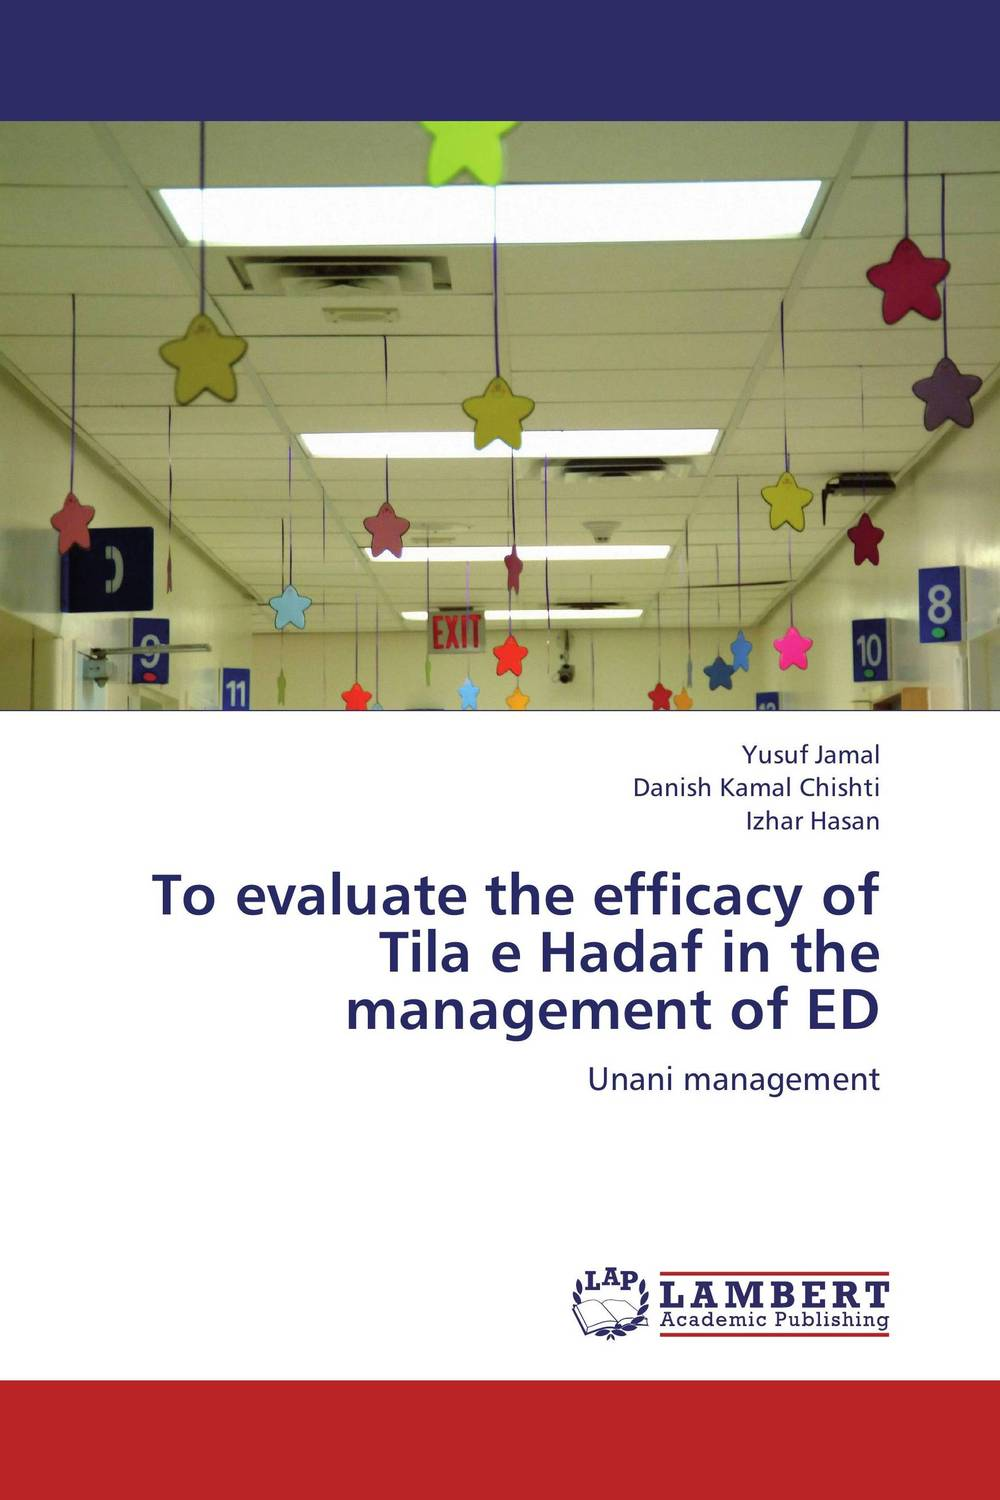 To evaluate the efficacy of Tila e Hadaf in the management of ED the treatment of erectile dysfunction prostate supplement health care slippers